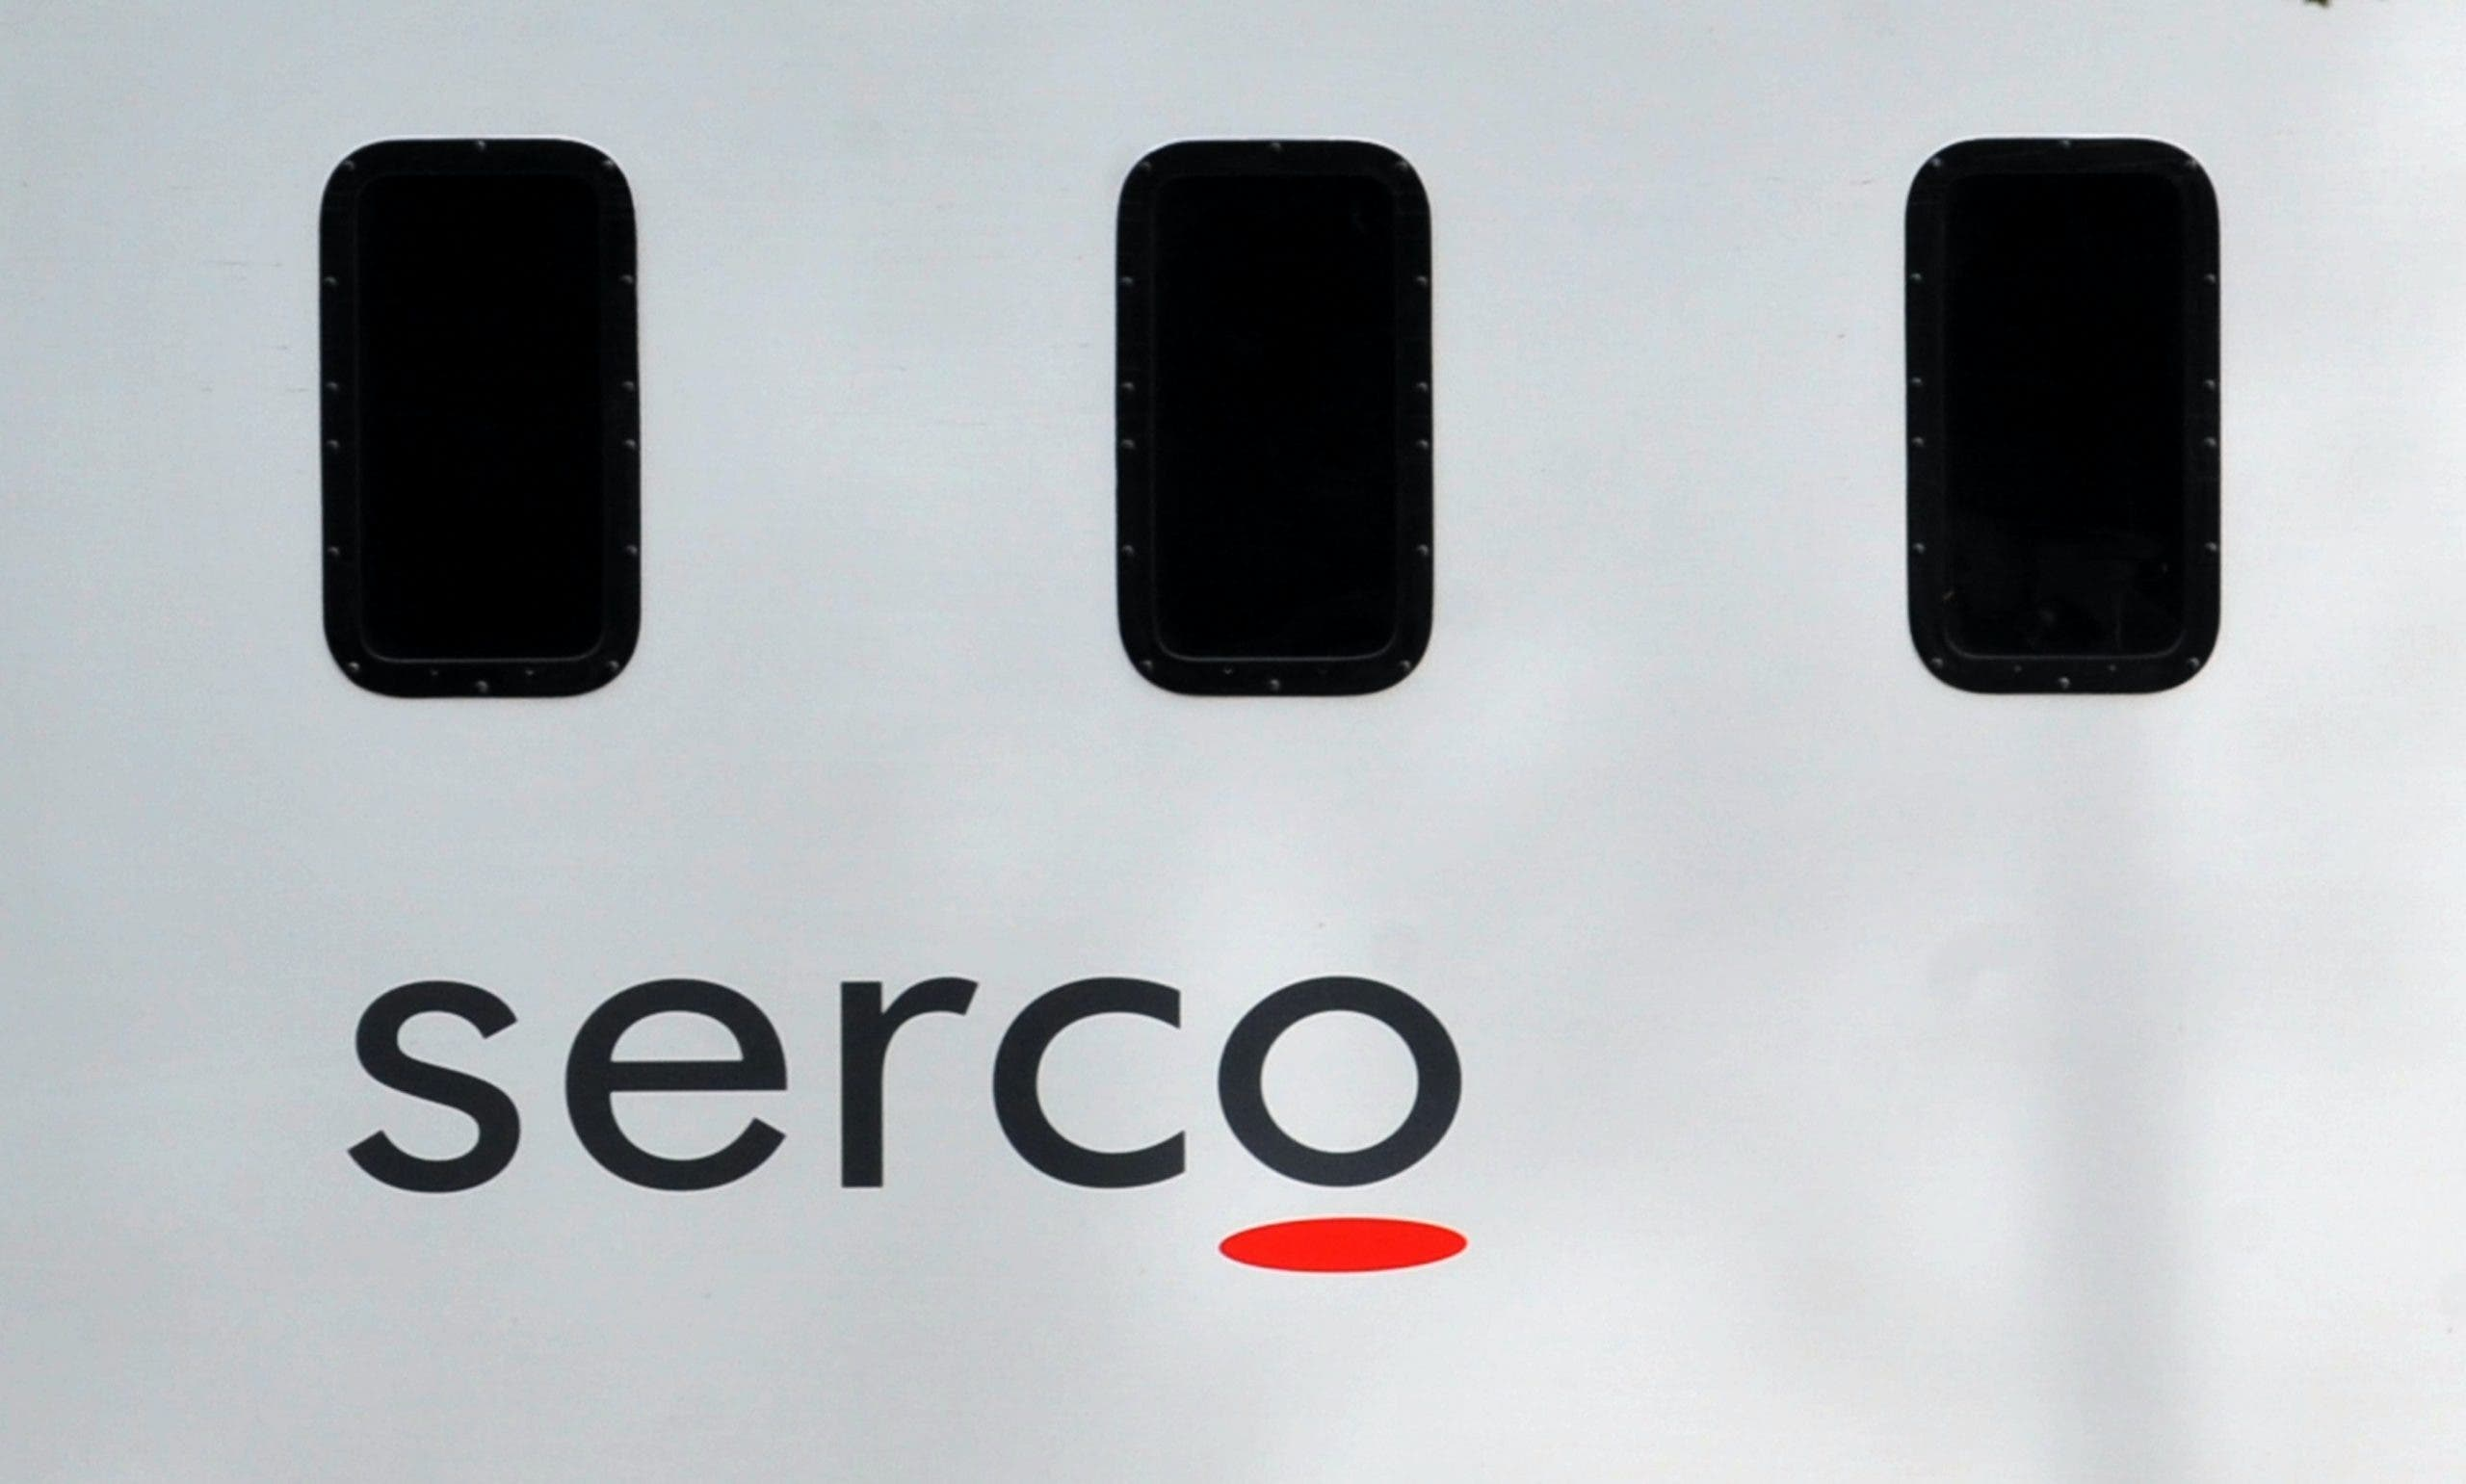 Serco profits set to soar as contract for 'broken' Test and Trace system is extended